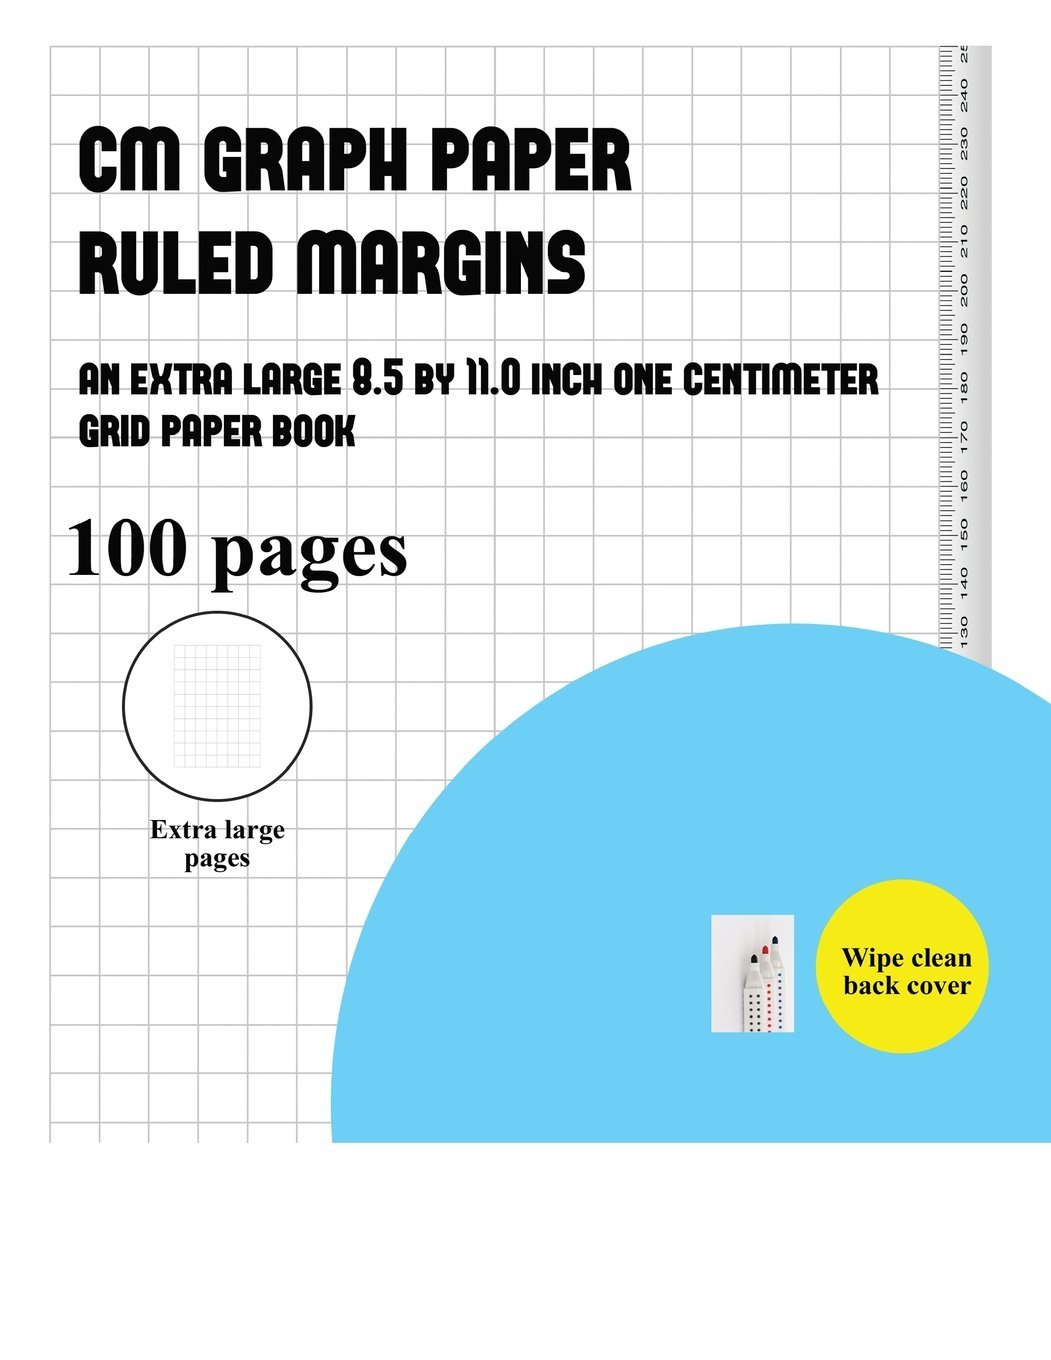 cm graph paper ruled margins an extra large 8 5 by 11 0 inch